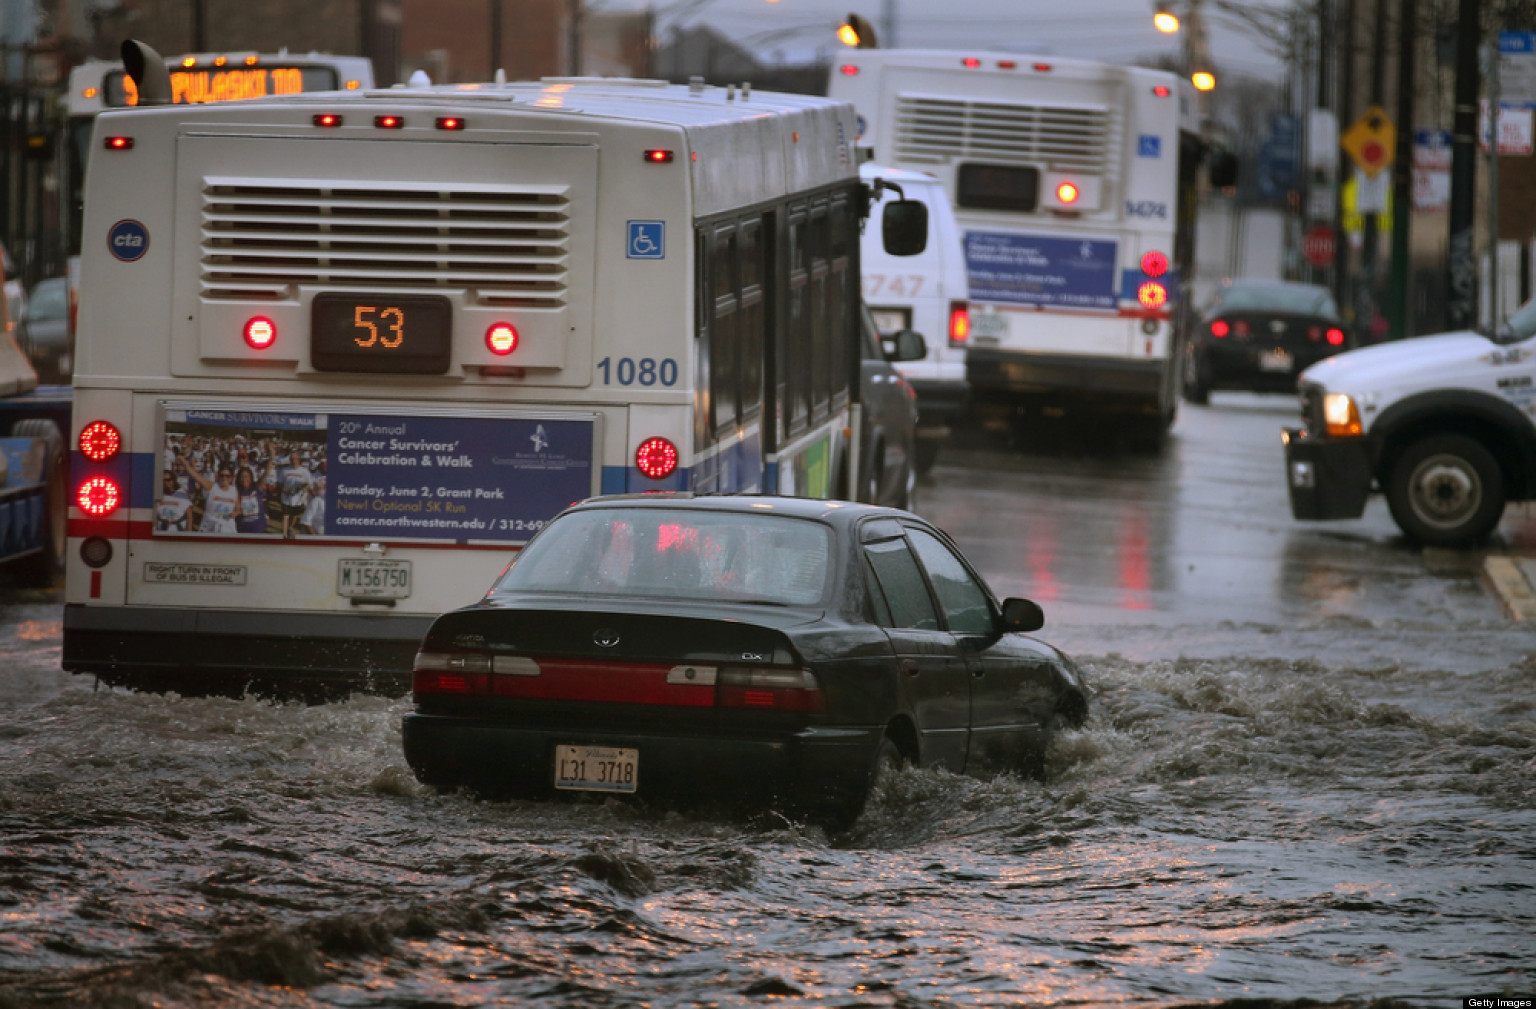 Chicago Flooding Heavy Rain Storm Prompts State Of Emergency - Chicago flooding map